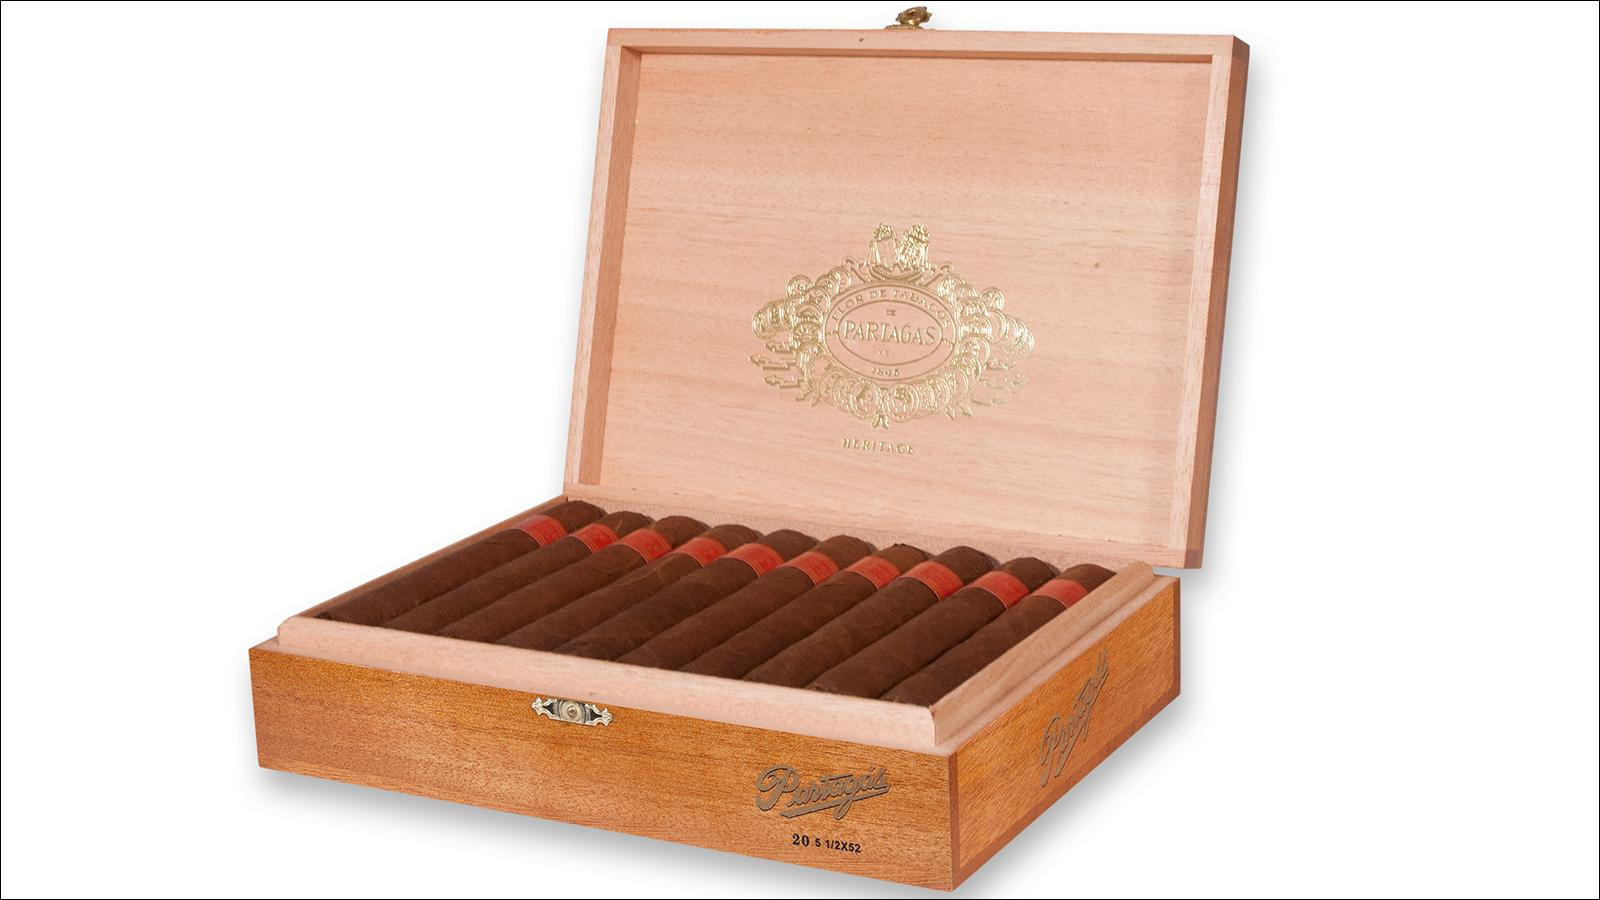 Partagas Heritage Series Pays Homage To Partagas Of The Past